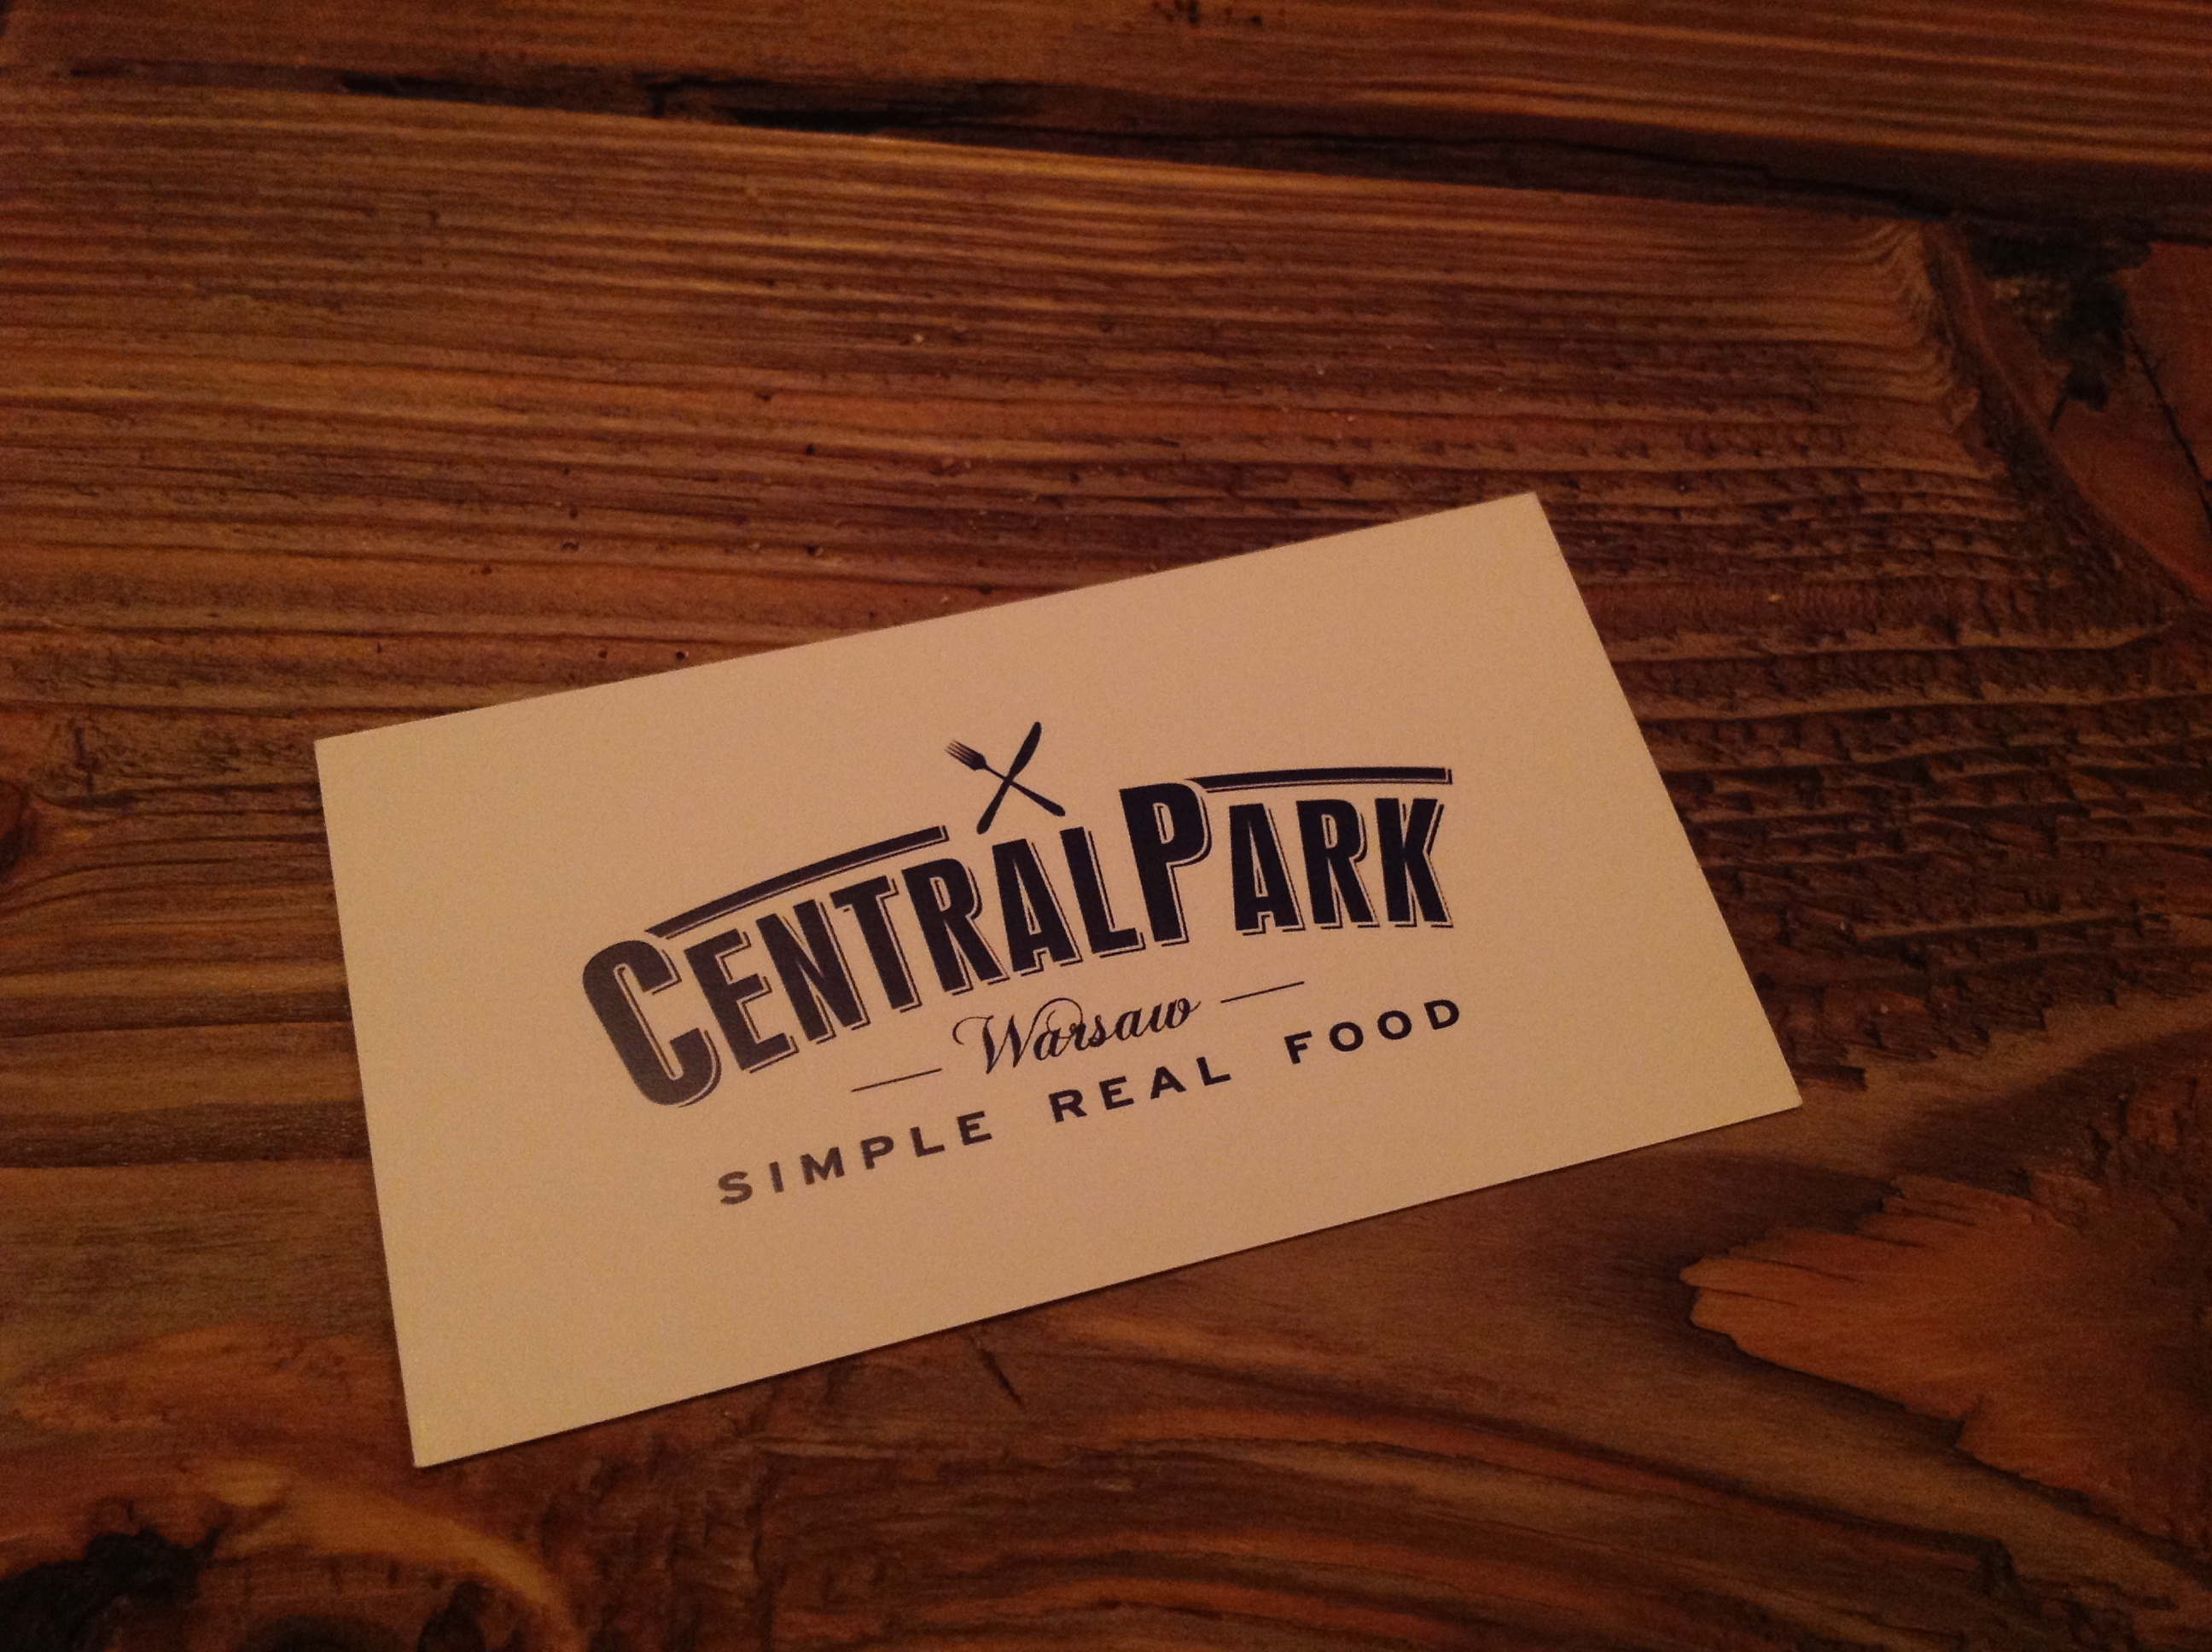 A rare find: Central Park Warsaw